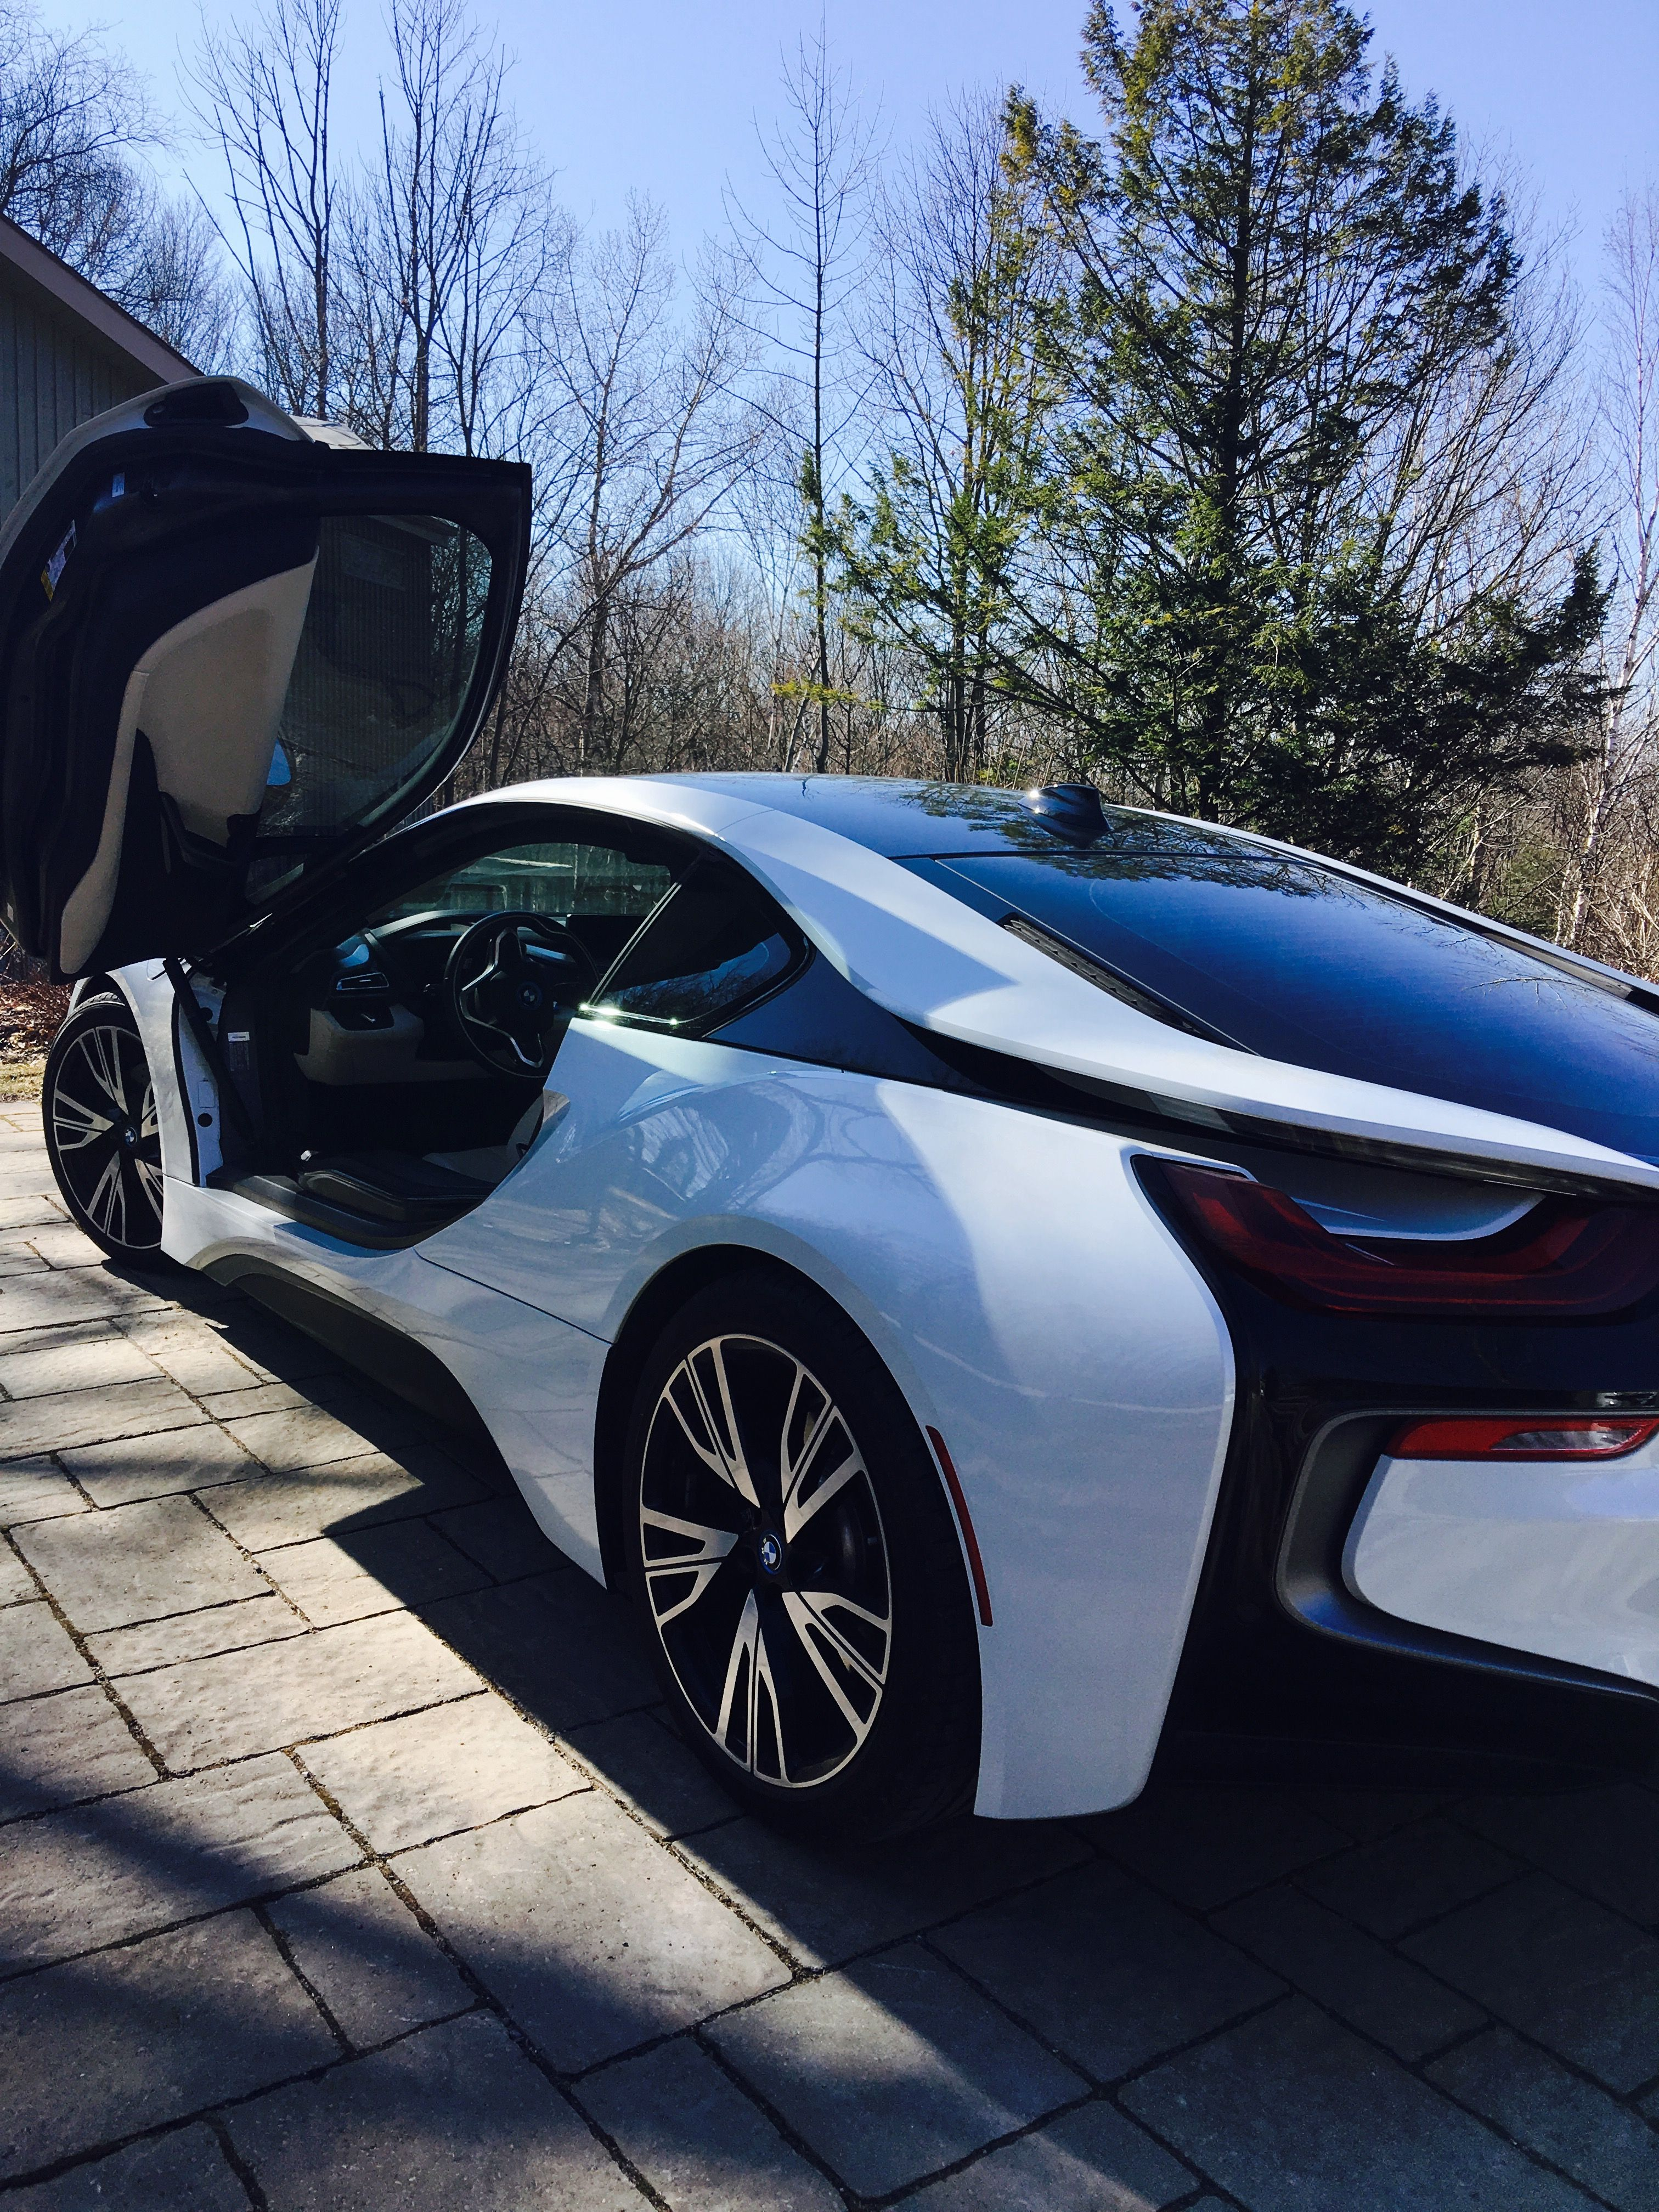 Pin By Voir Naut On Cars Pinterest Bmw I8 Bmw And Cars